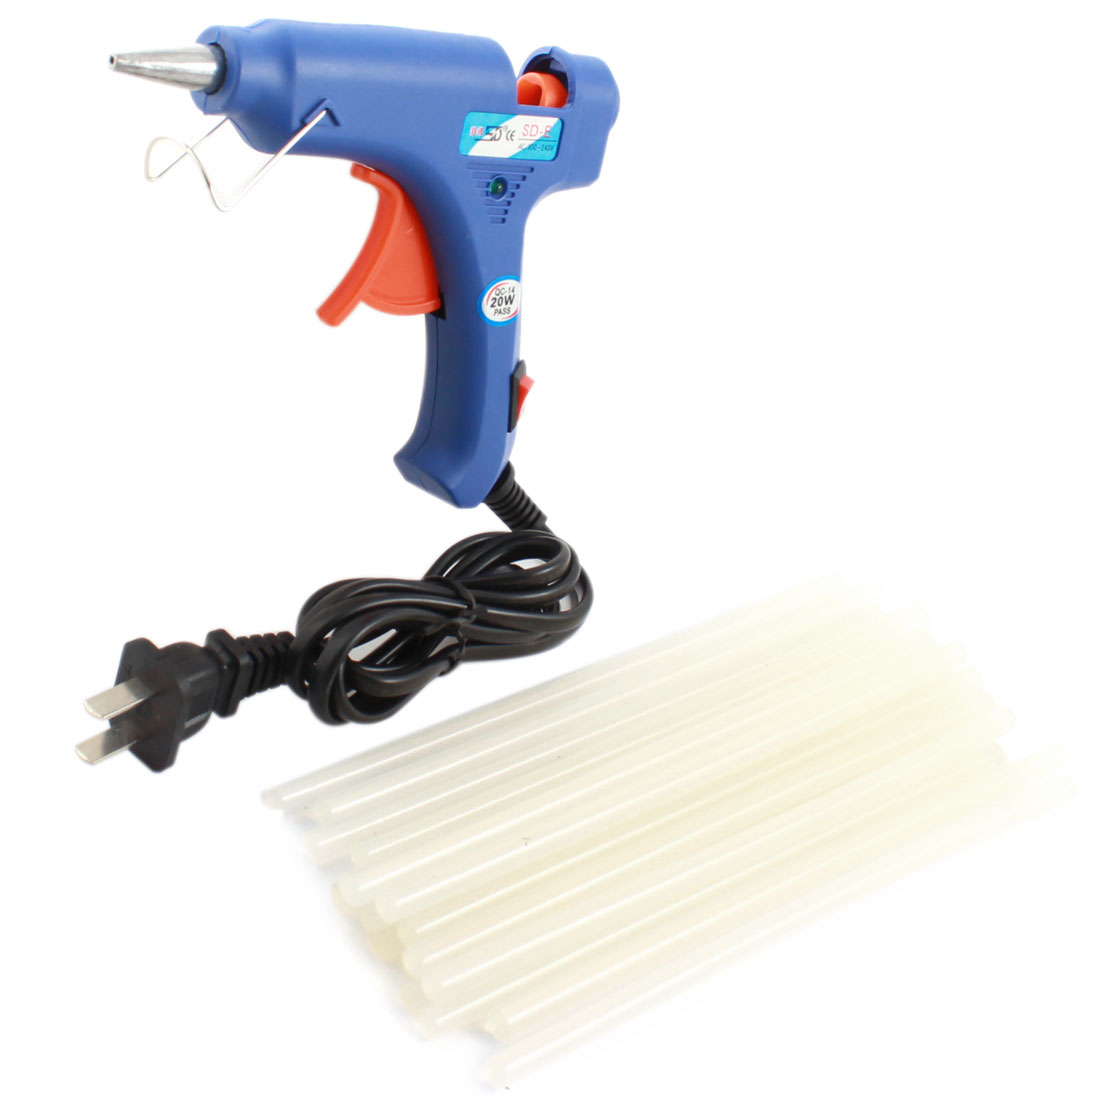 AC100V-240V US Plug Plastic Shell Arts Craft Crafting 20W Blue Glue Gun + 20Pcs 7x170mm Hot Melt Adhesive Sticks